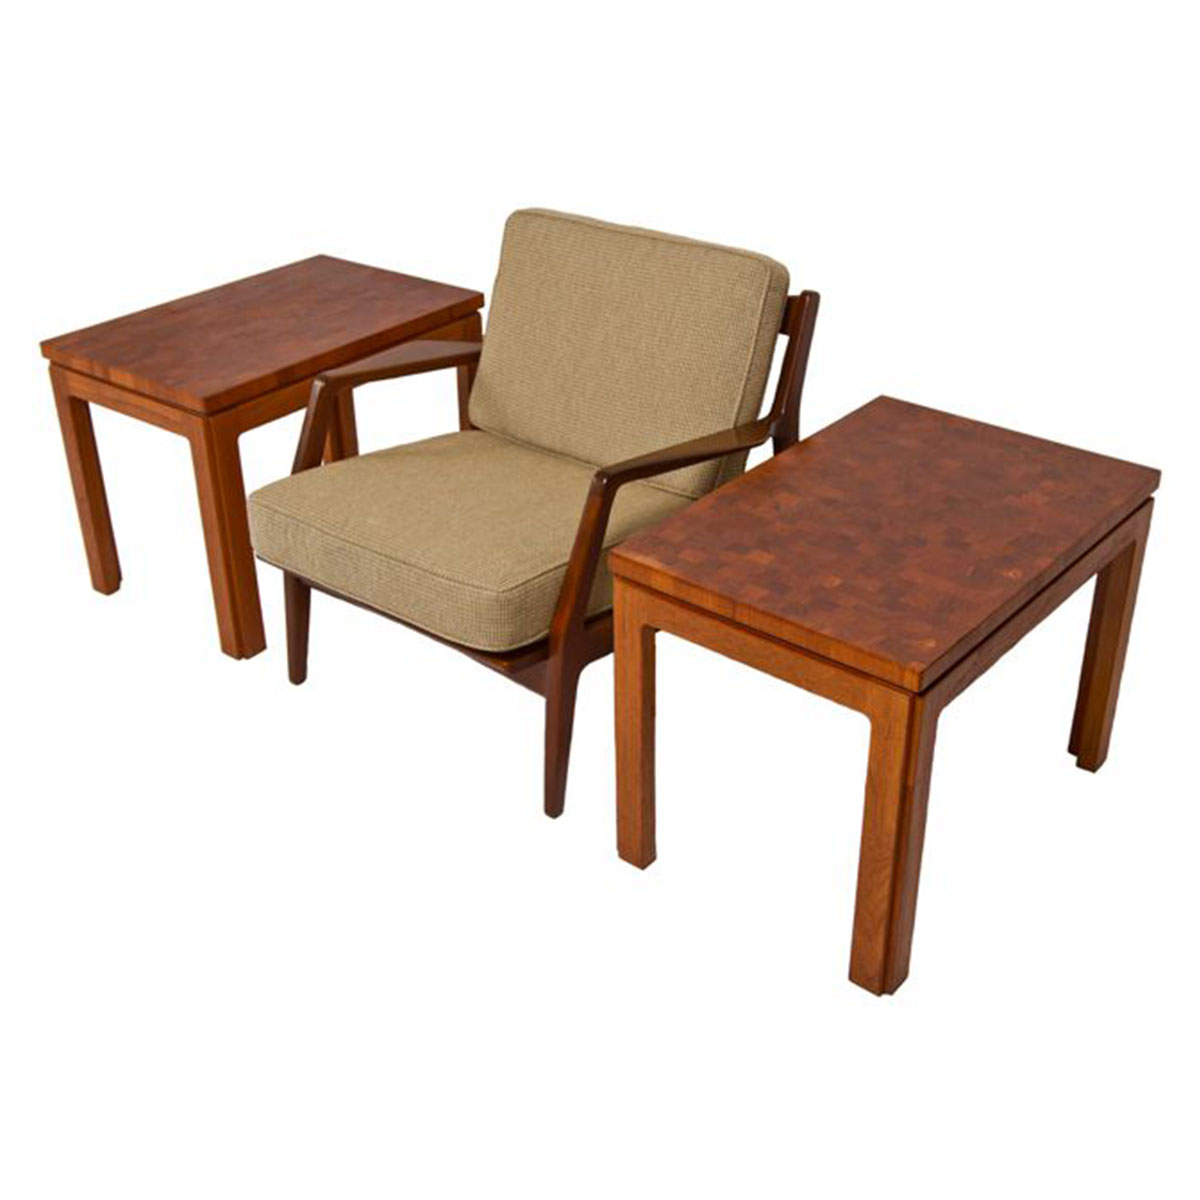 Pair of Solid Teak Parquet Side Tables